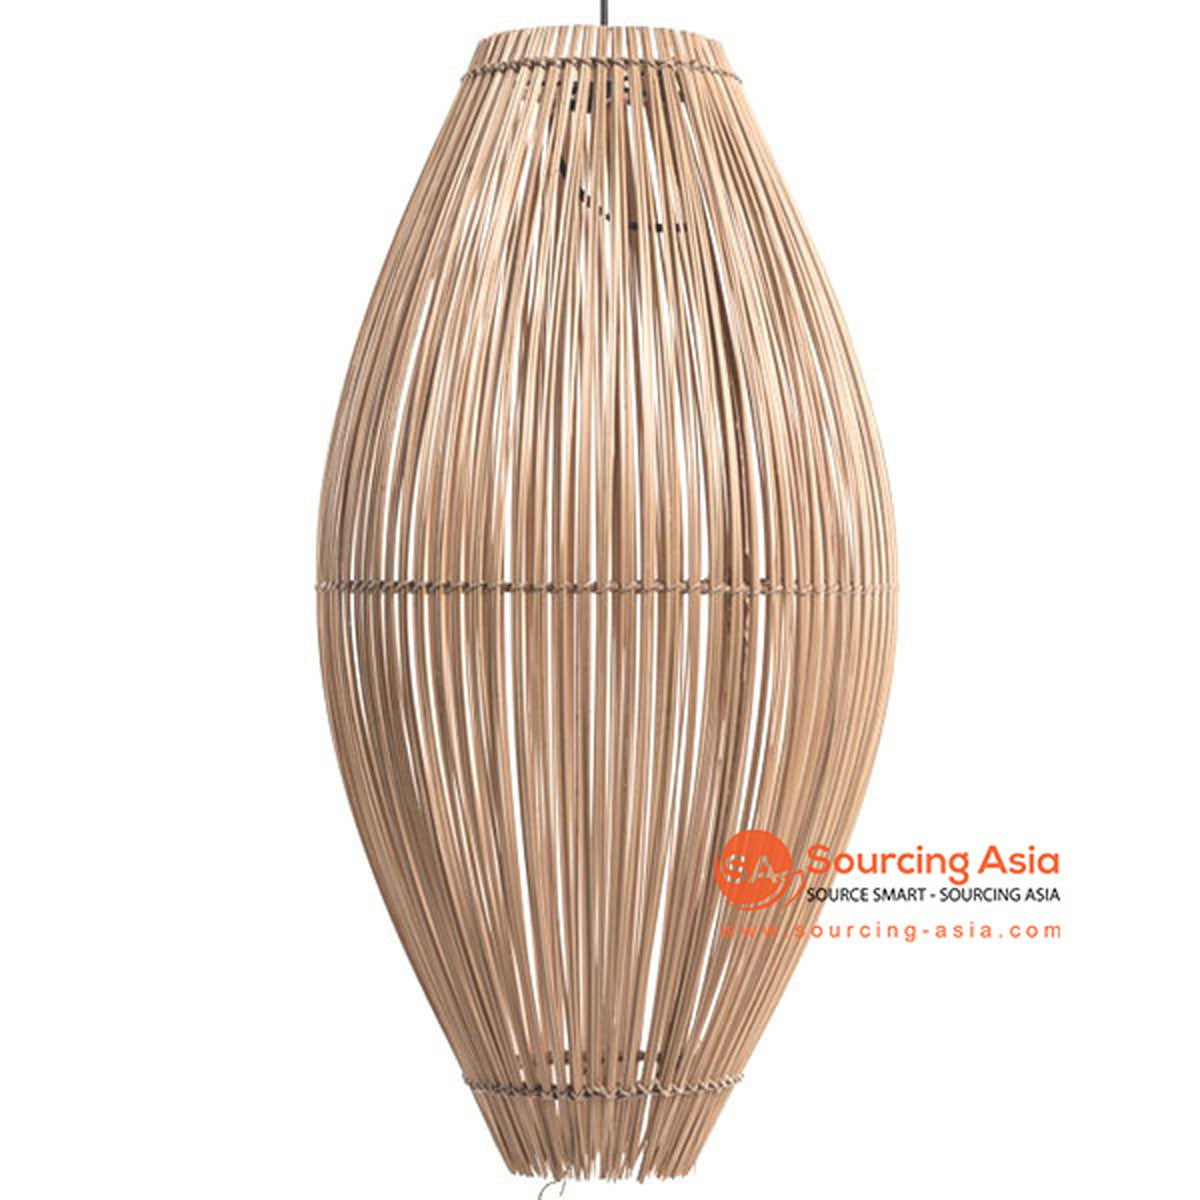 SHL064-11 NATURAL RATTAN PENDANT LAMP